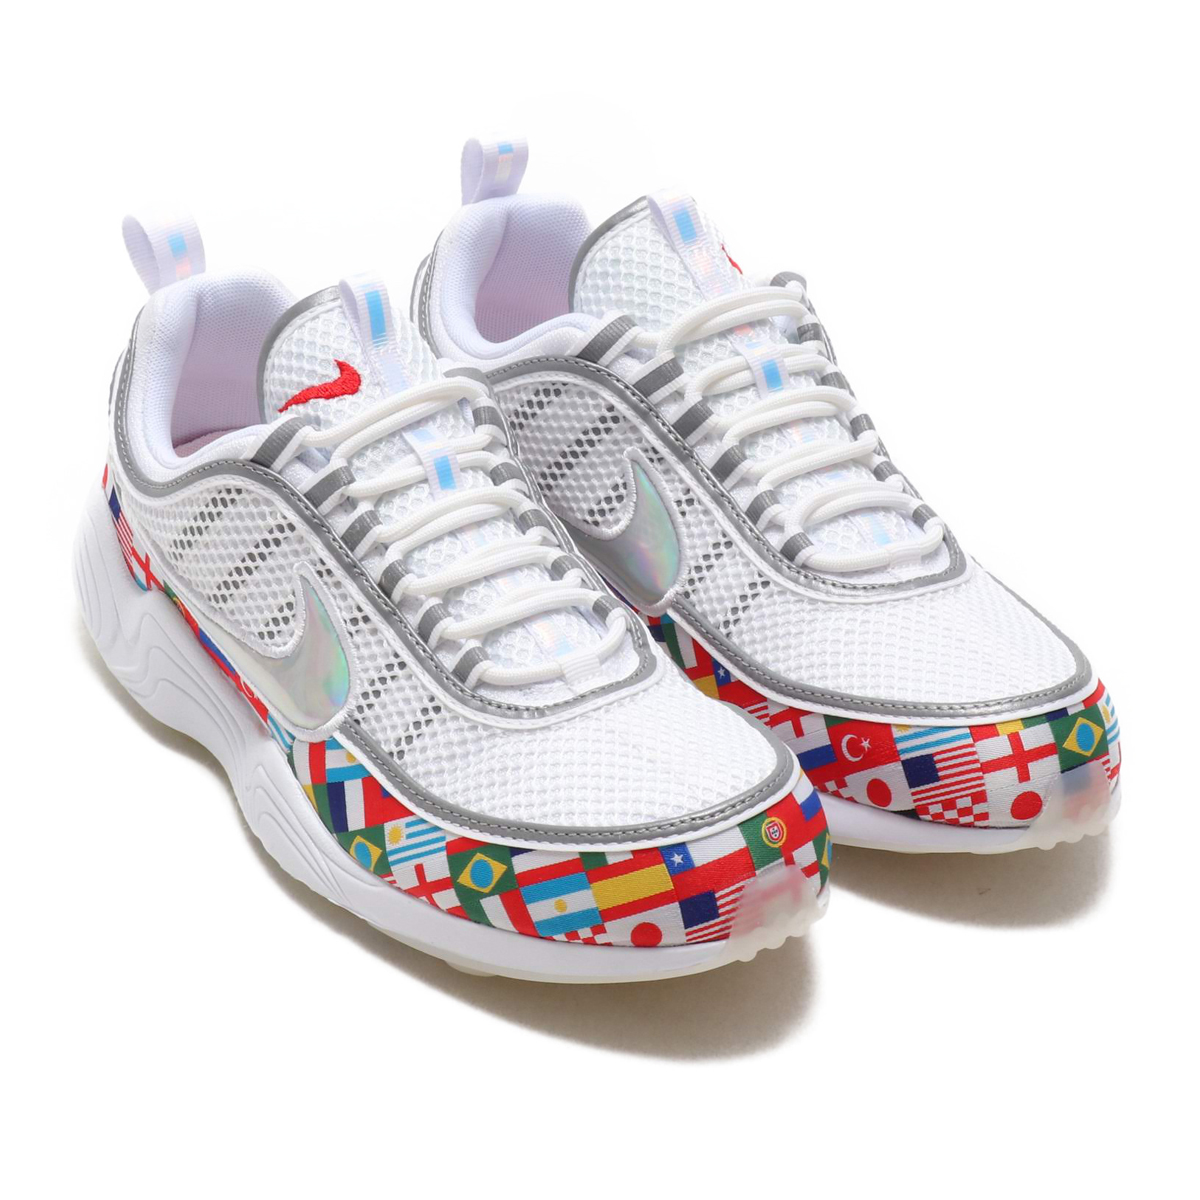 NIKE AIR ZOOM SPIRIDON  16 NIC QS (Nike air zoom pyridone 16 WC) (WHITE  MULTI-COLOR) 18SU-S 475033d25